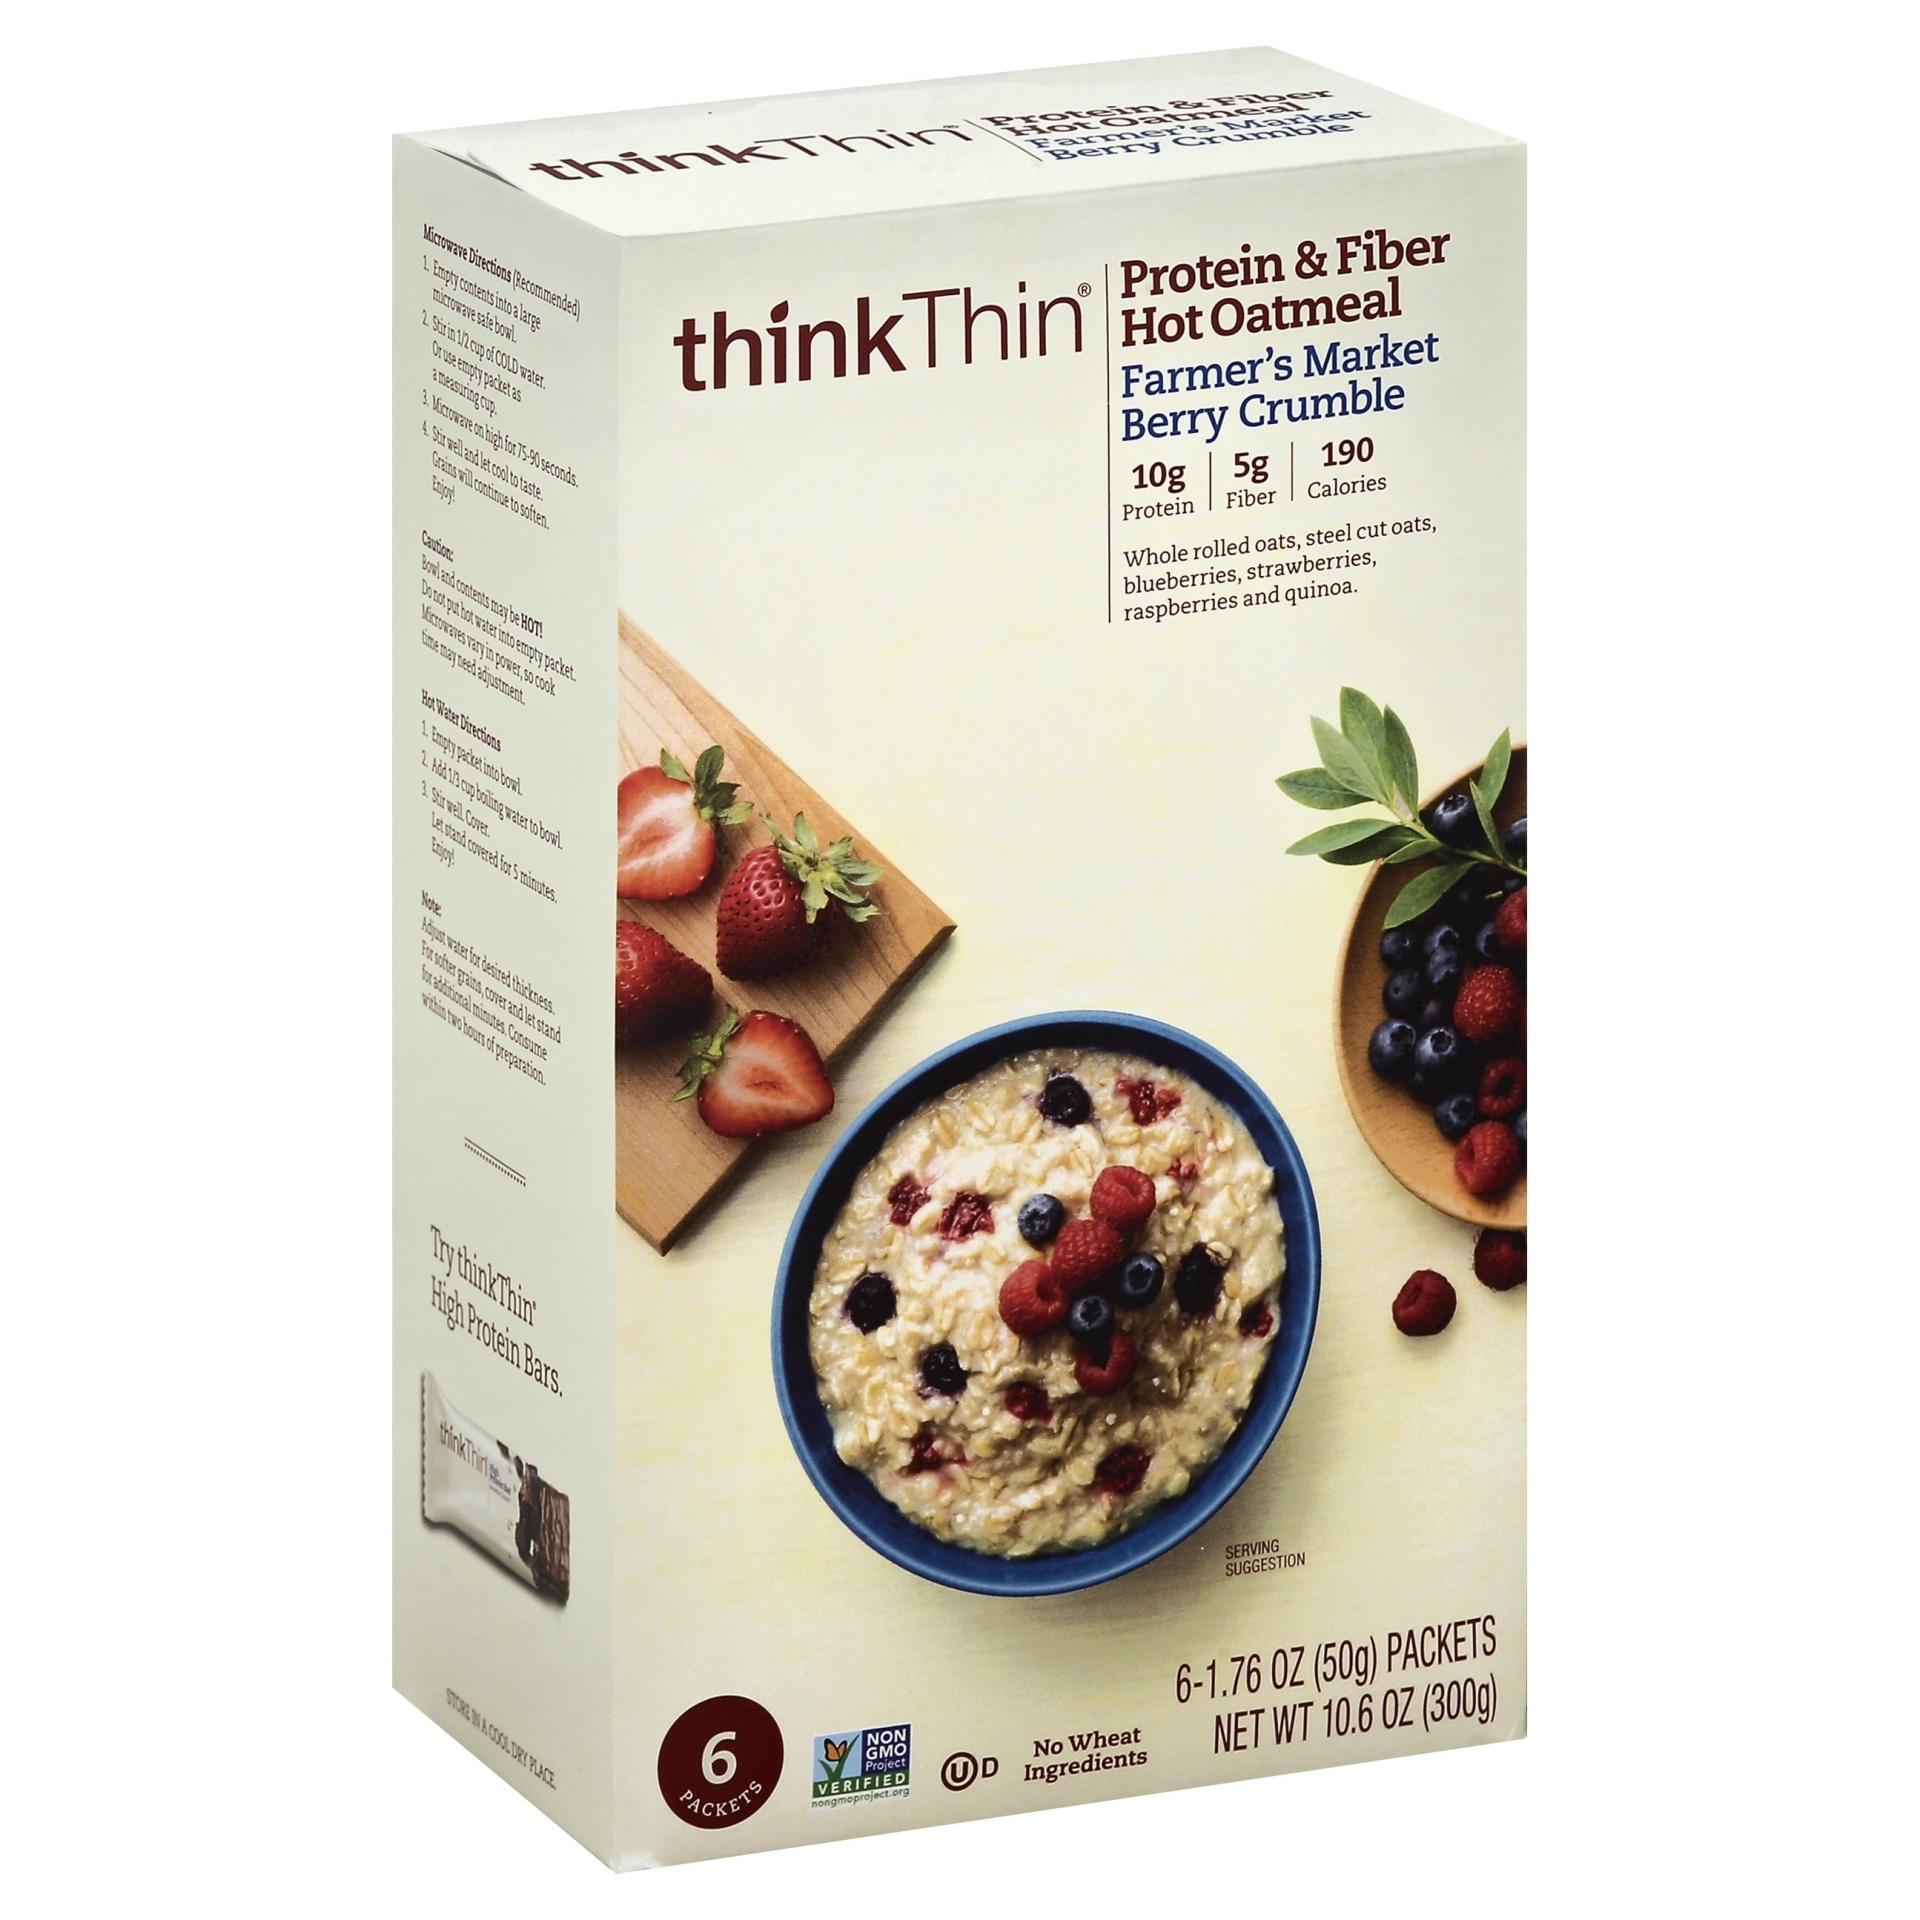 slide 1 of 9, thinkThin Protein & Fiber Hot Oatmeal Farmer's Market Berry Crumble,